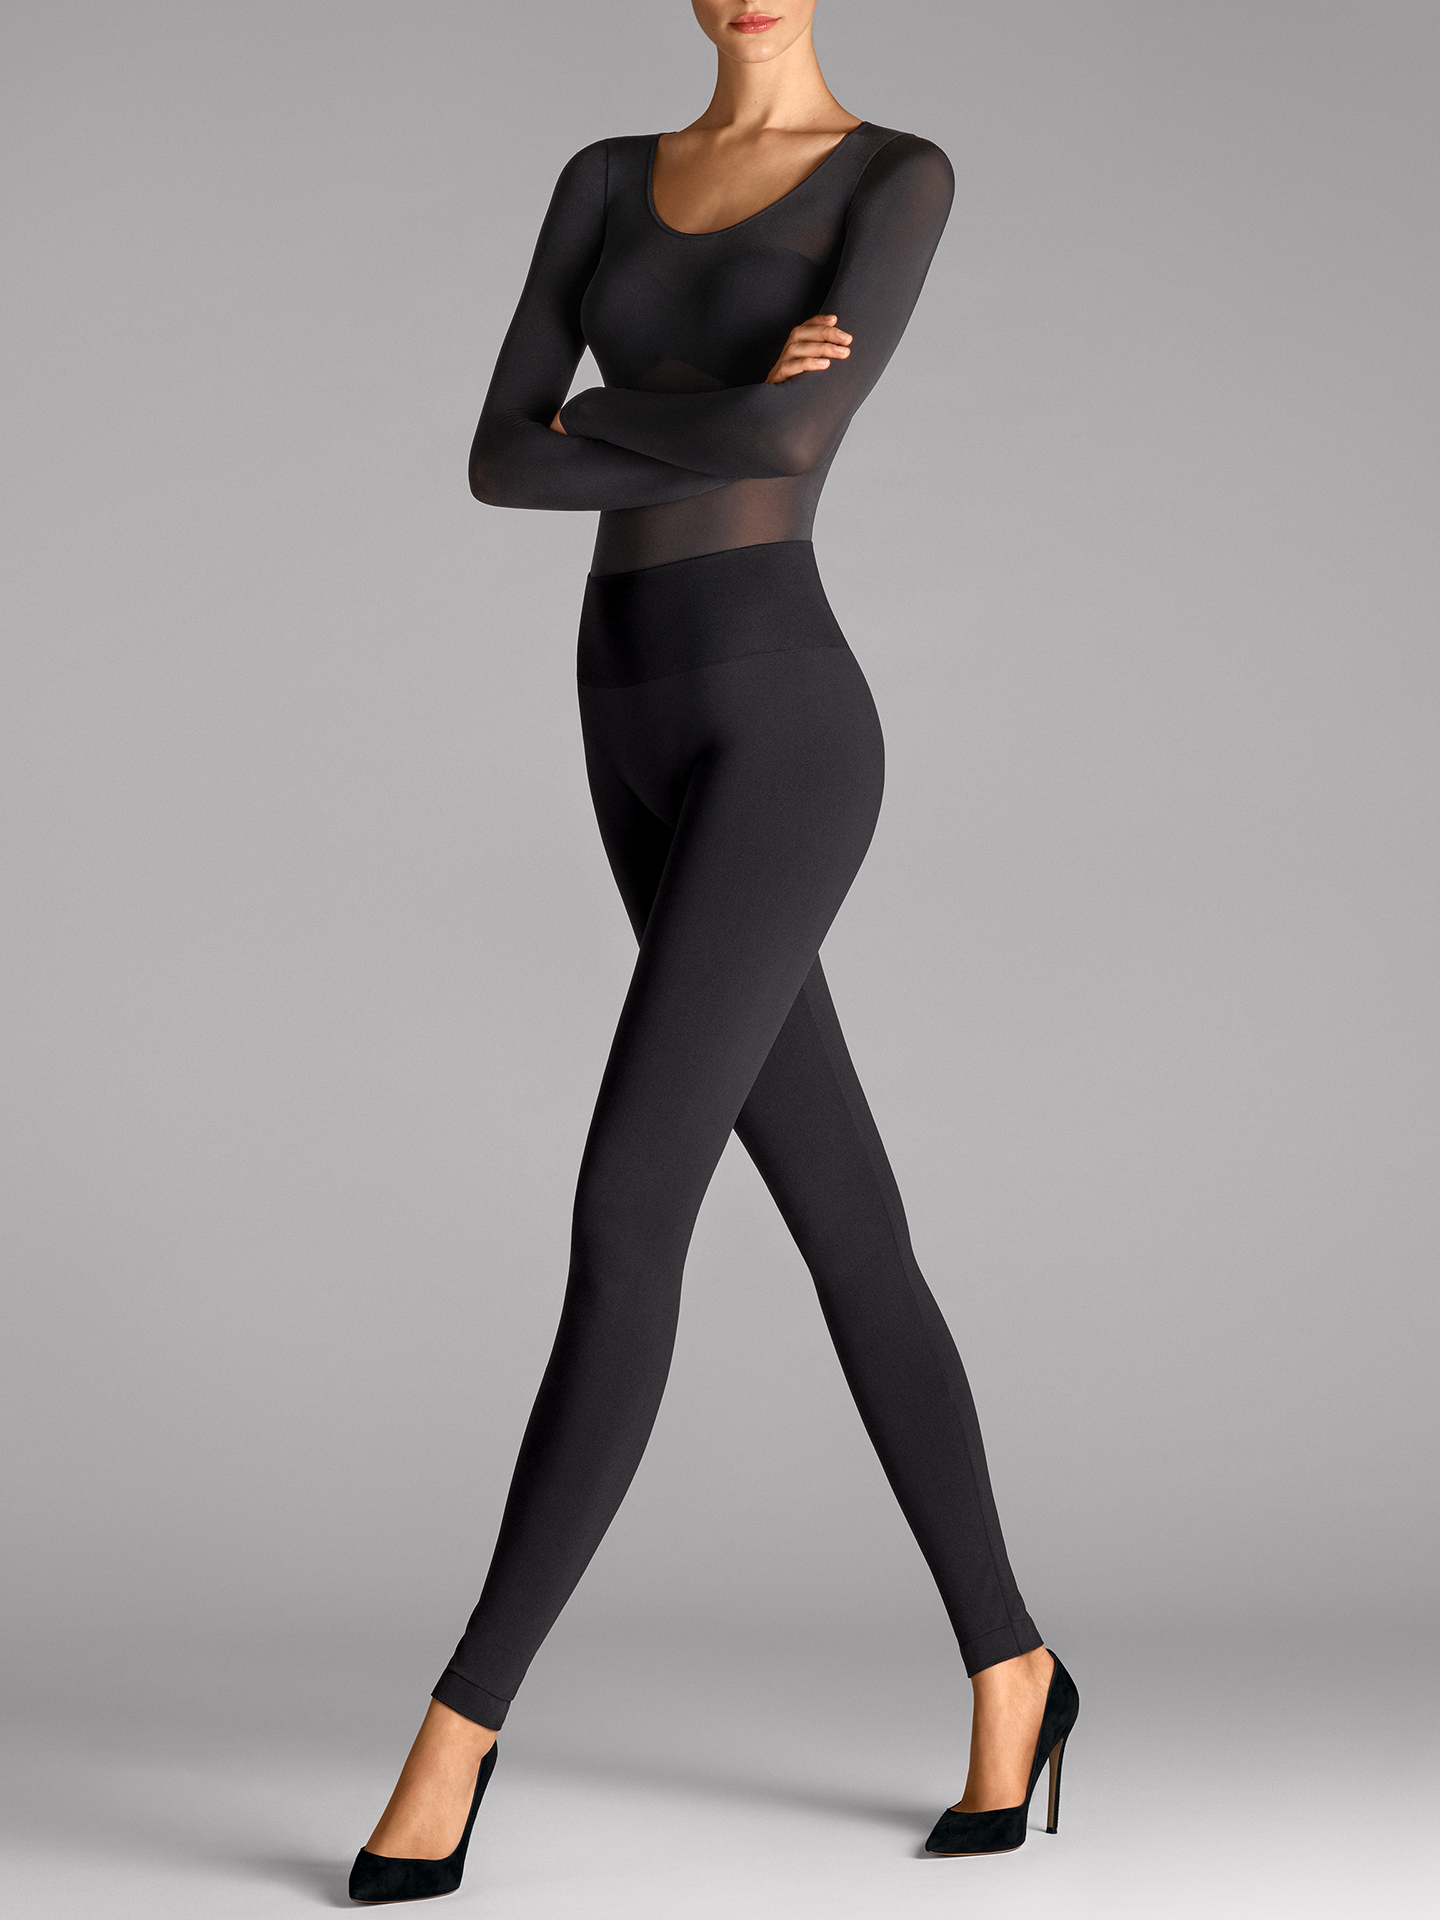 Wolford Apparel & Accessories > Clothing > Leggings Perfect Fit Leggings - 7005 - XL